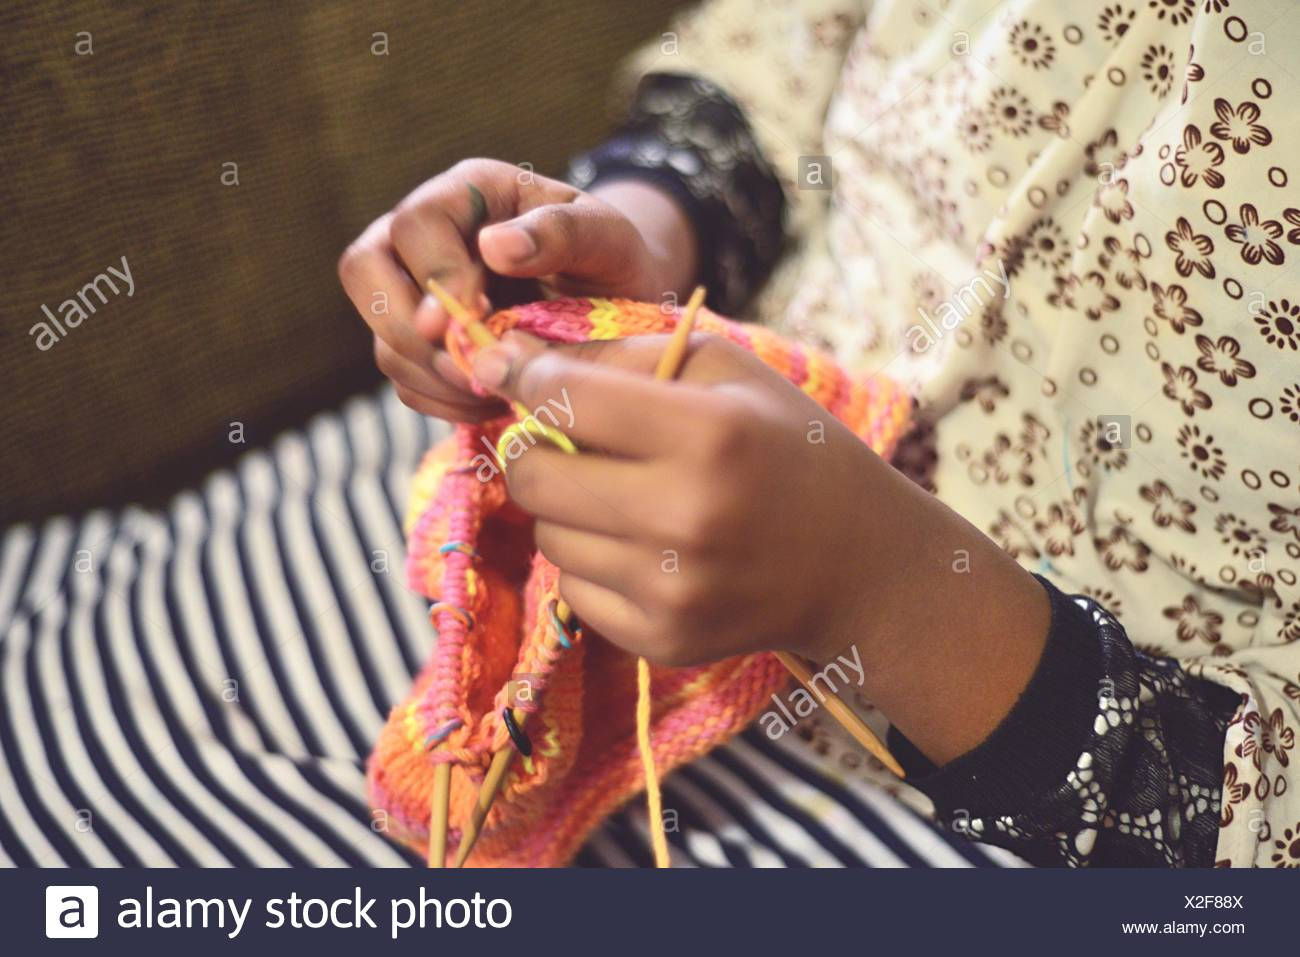 Woman's Hands Knitting Photo Stock